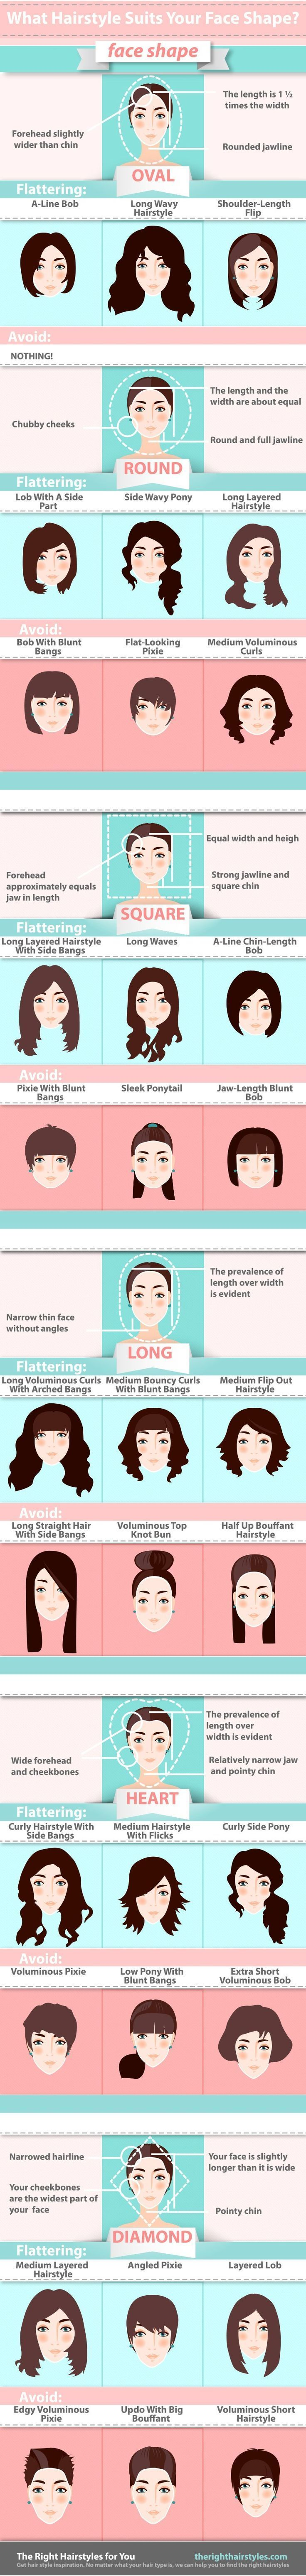 Guide The Perfect Hairstyle For Your Face Shape Best Beauty Tips And Fashion Ideas